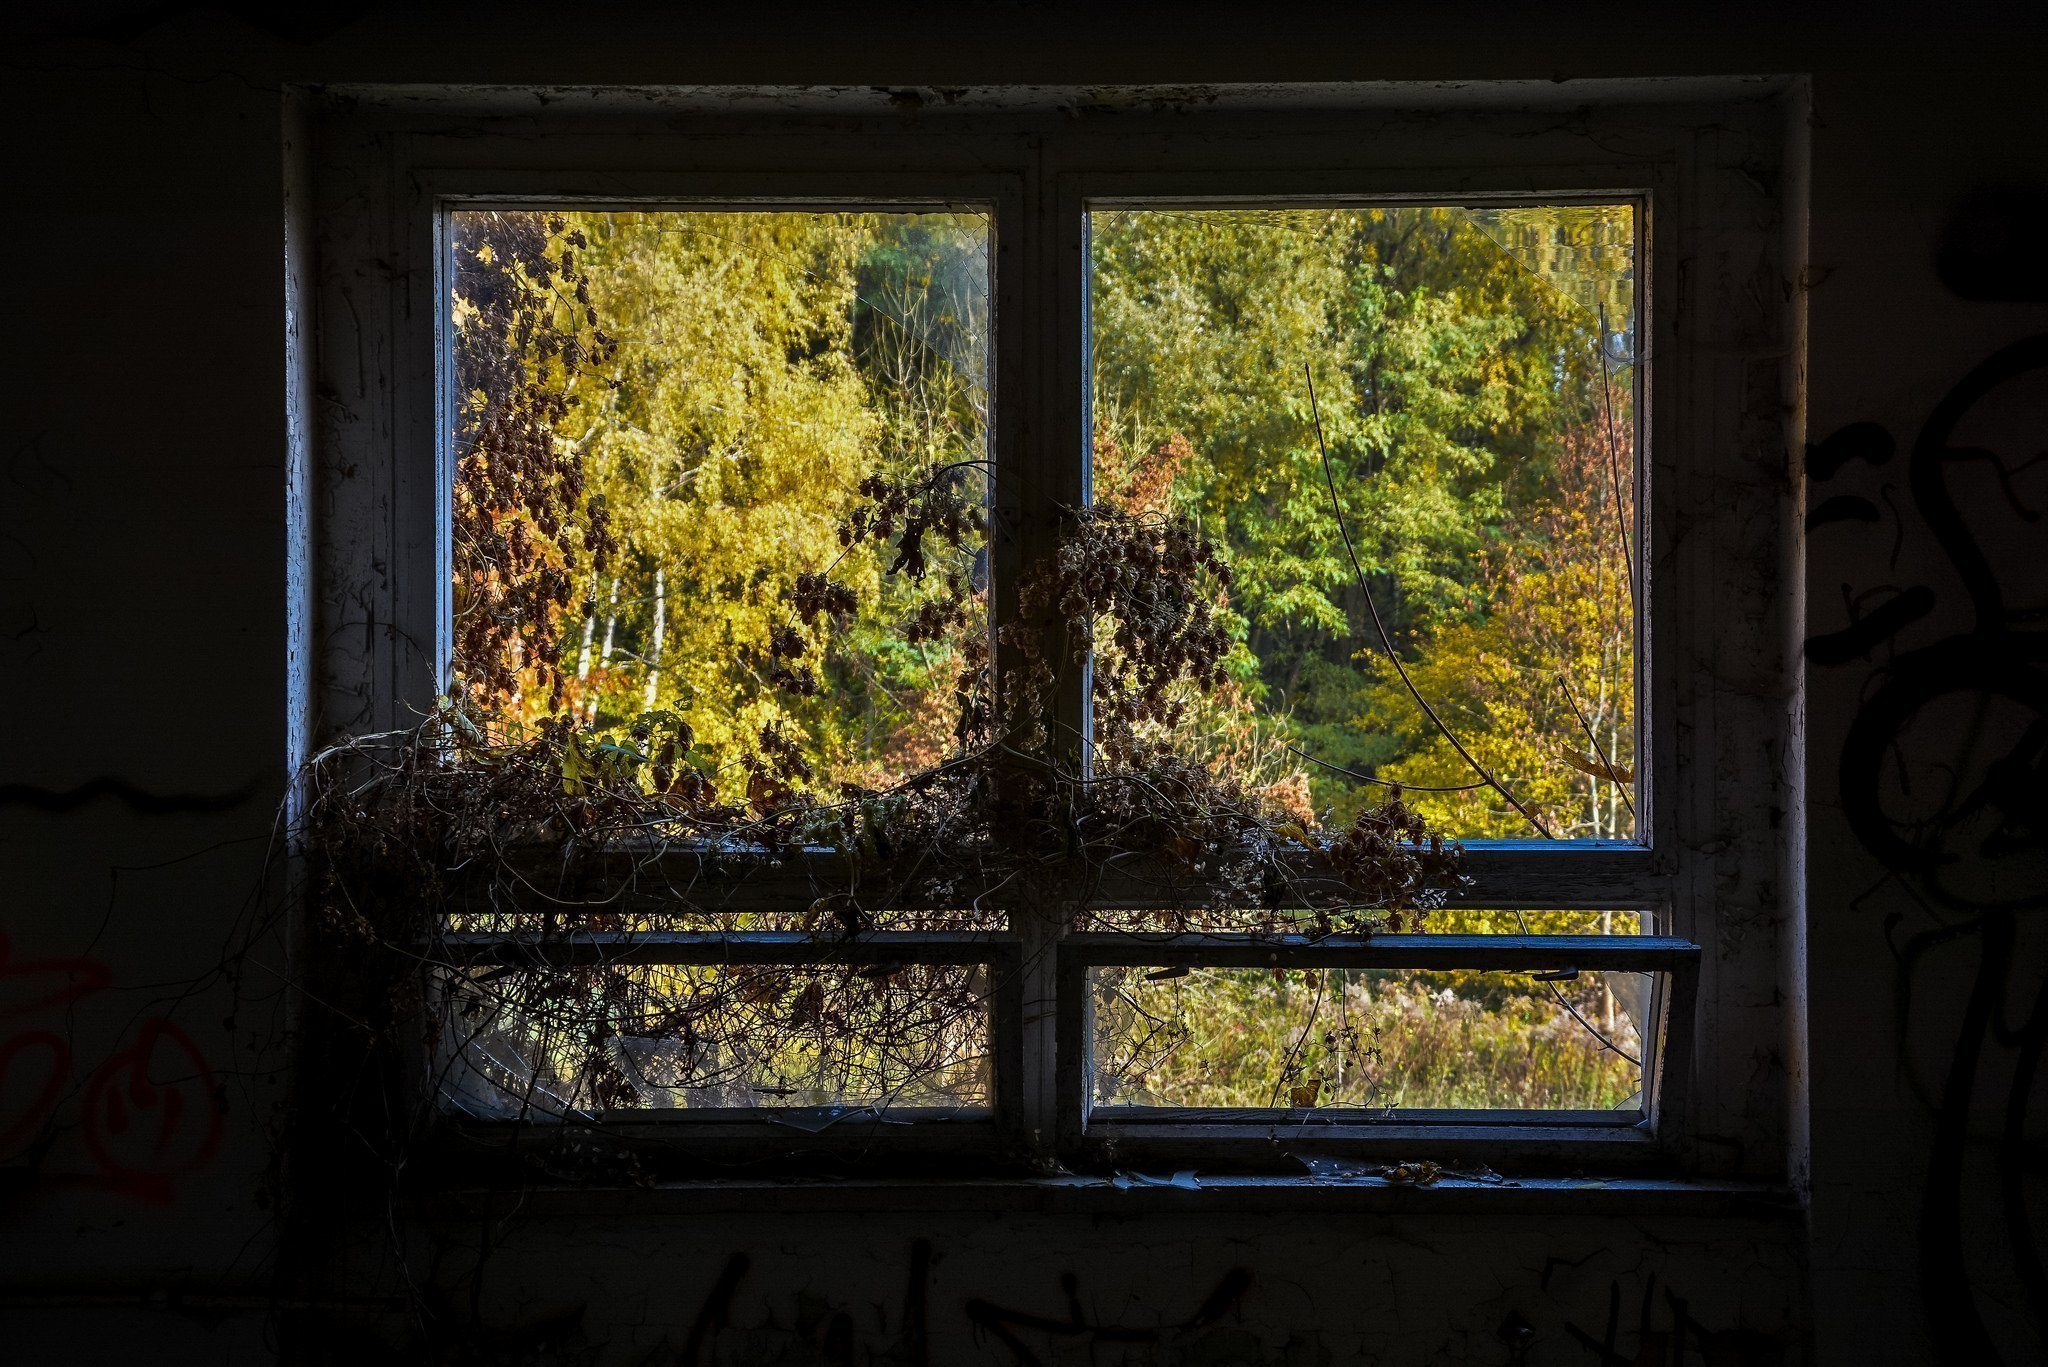 abandoned hospital berlin verlassenes krankenhaus lost places urbex ruins germany overgrown window